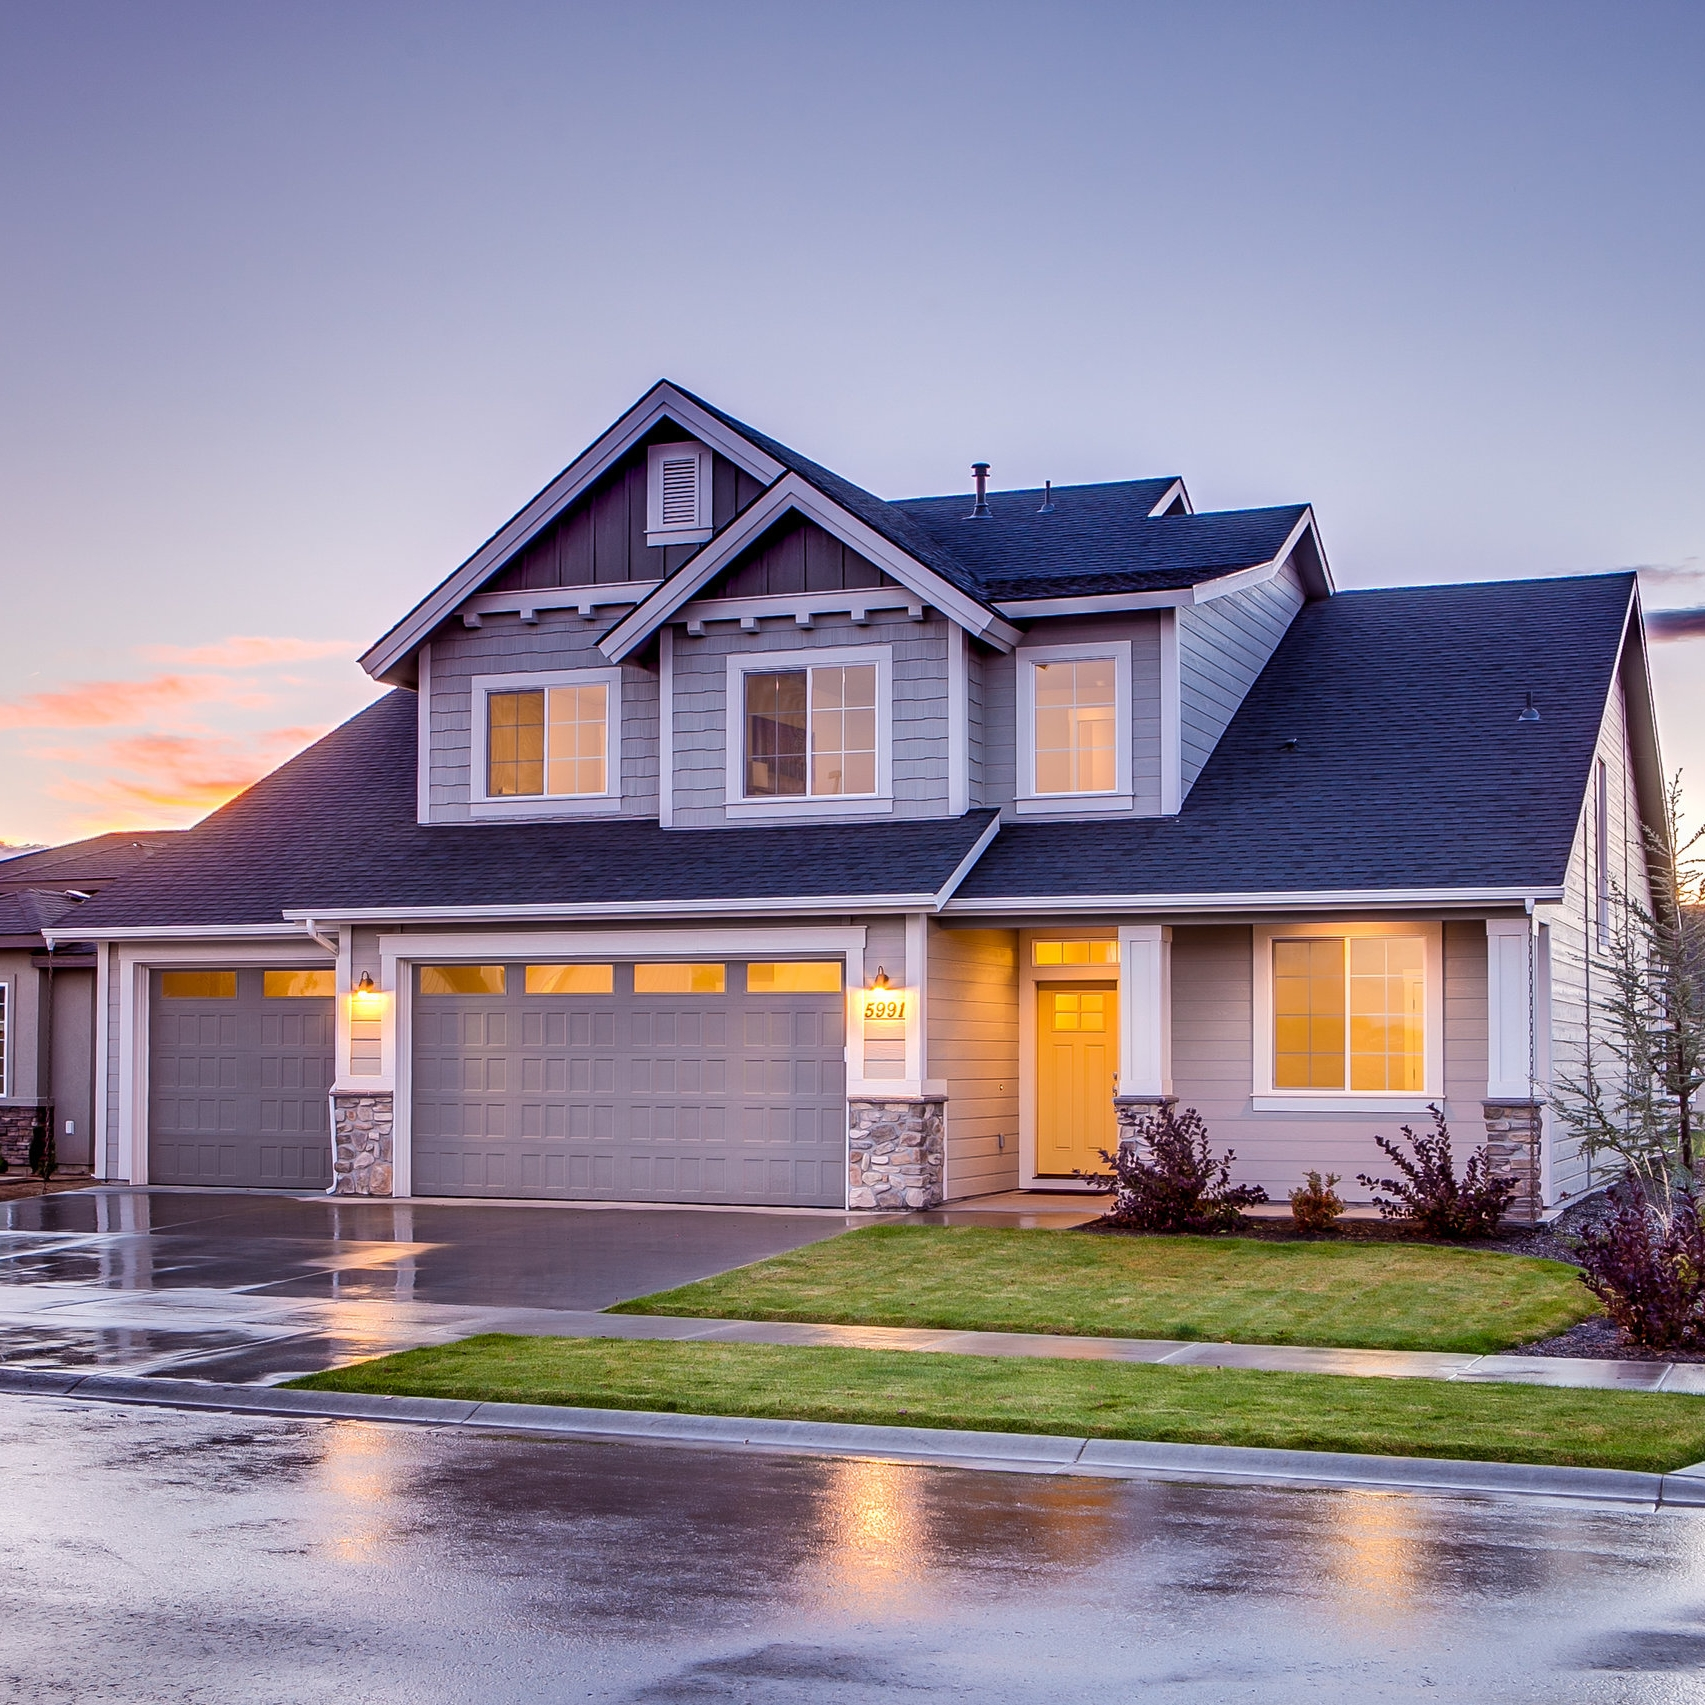 Residential & Commercial Real Estate   Our attorneys provide full service representation for both residential real estate and commercial property transactions, representing buyers or sellers.